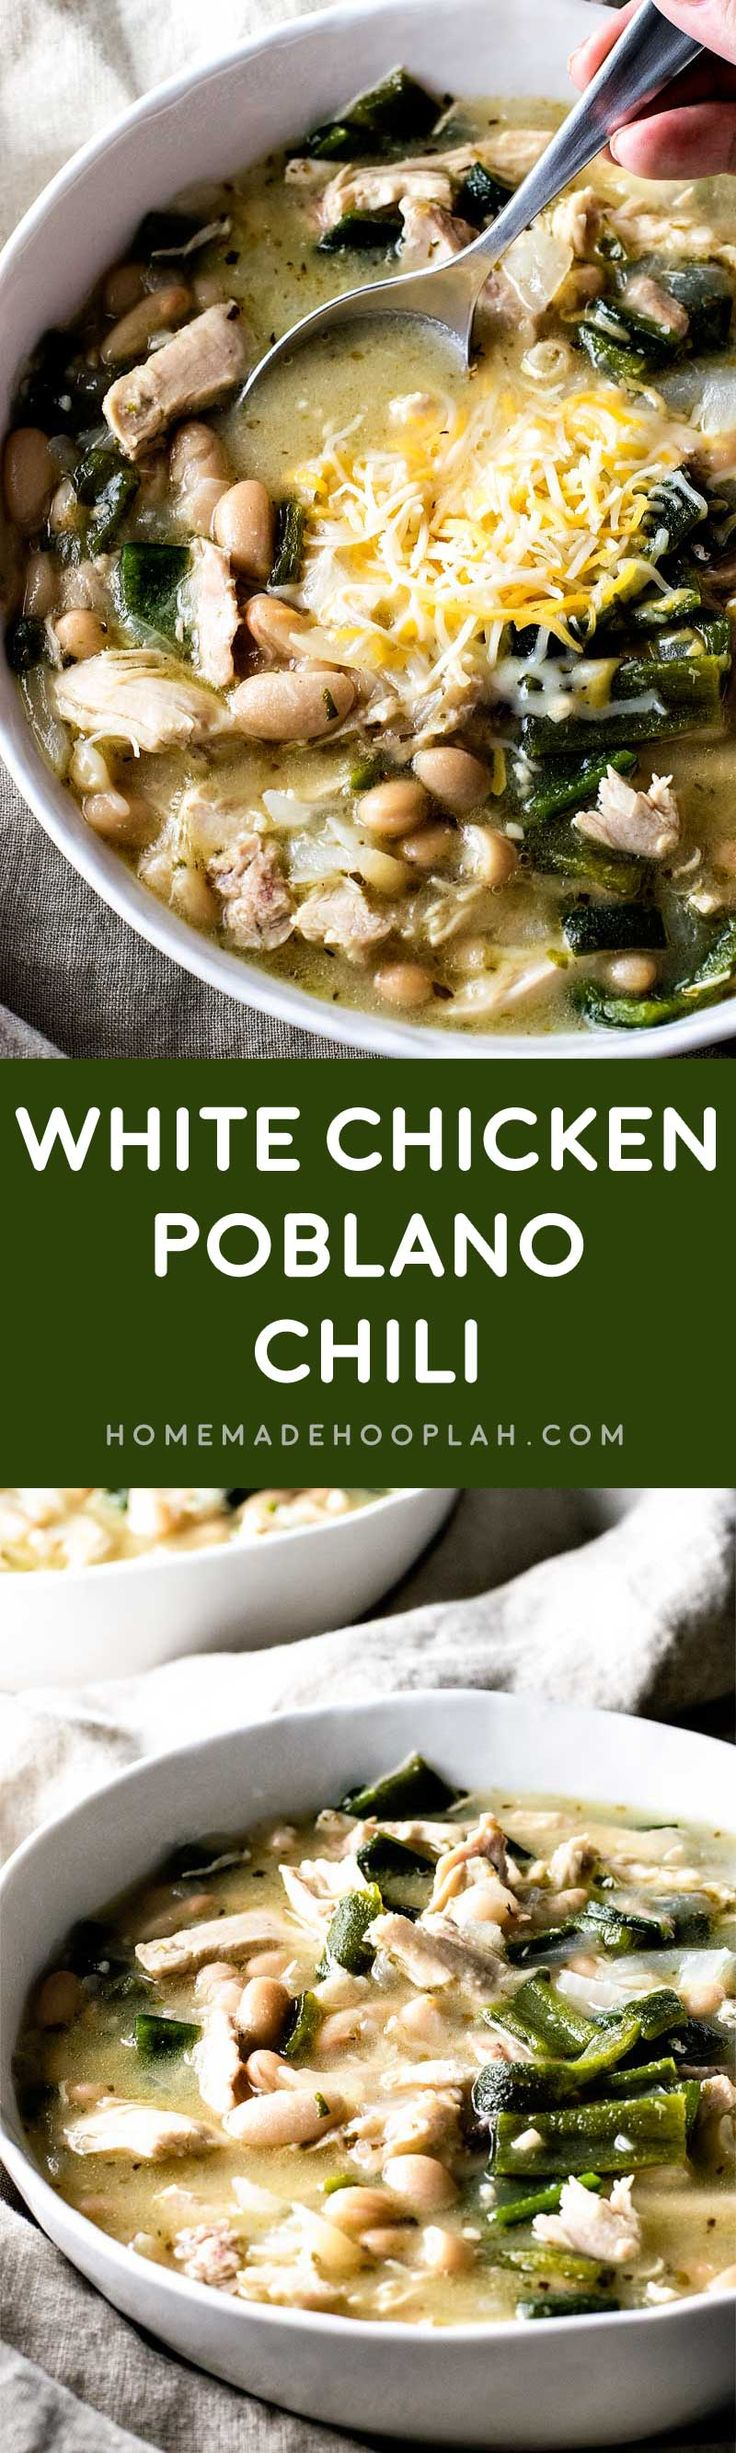 White Chicken Poblano Chili! Boiled whole chicken, homemade chicken broth, tender chiles, and flavorful cannellini beans make this white chicken poblano chili an at-home favorite! | HomemadeHooplah.com